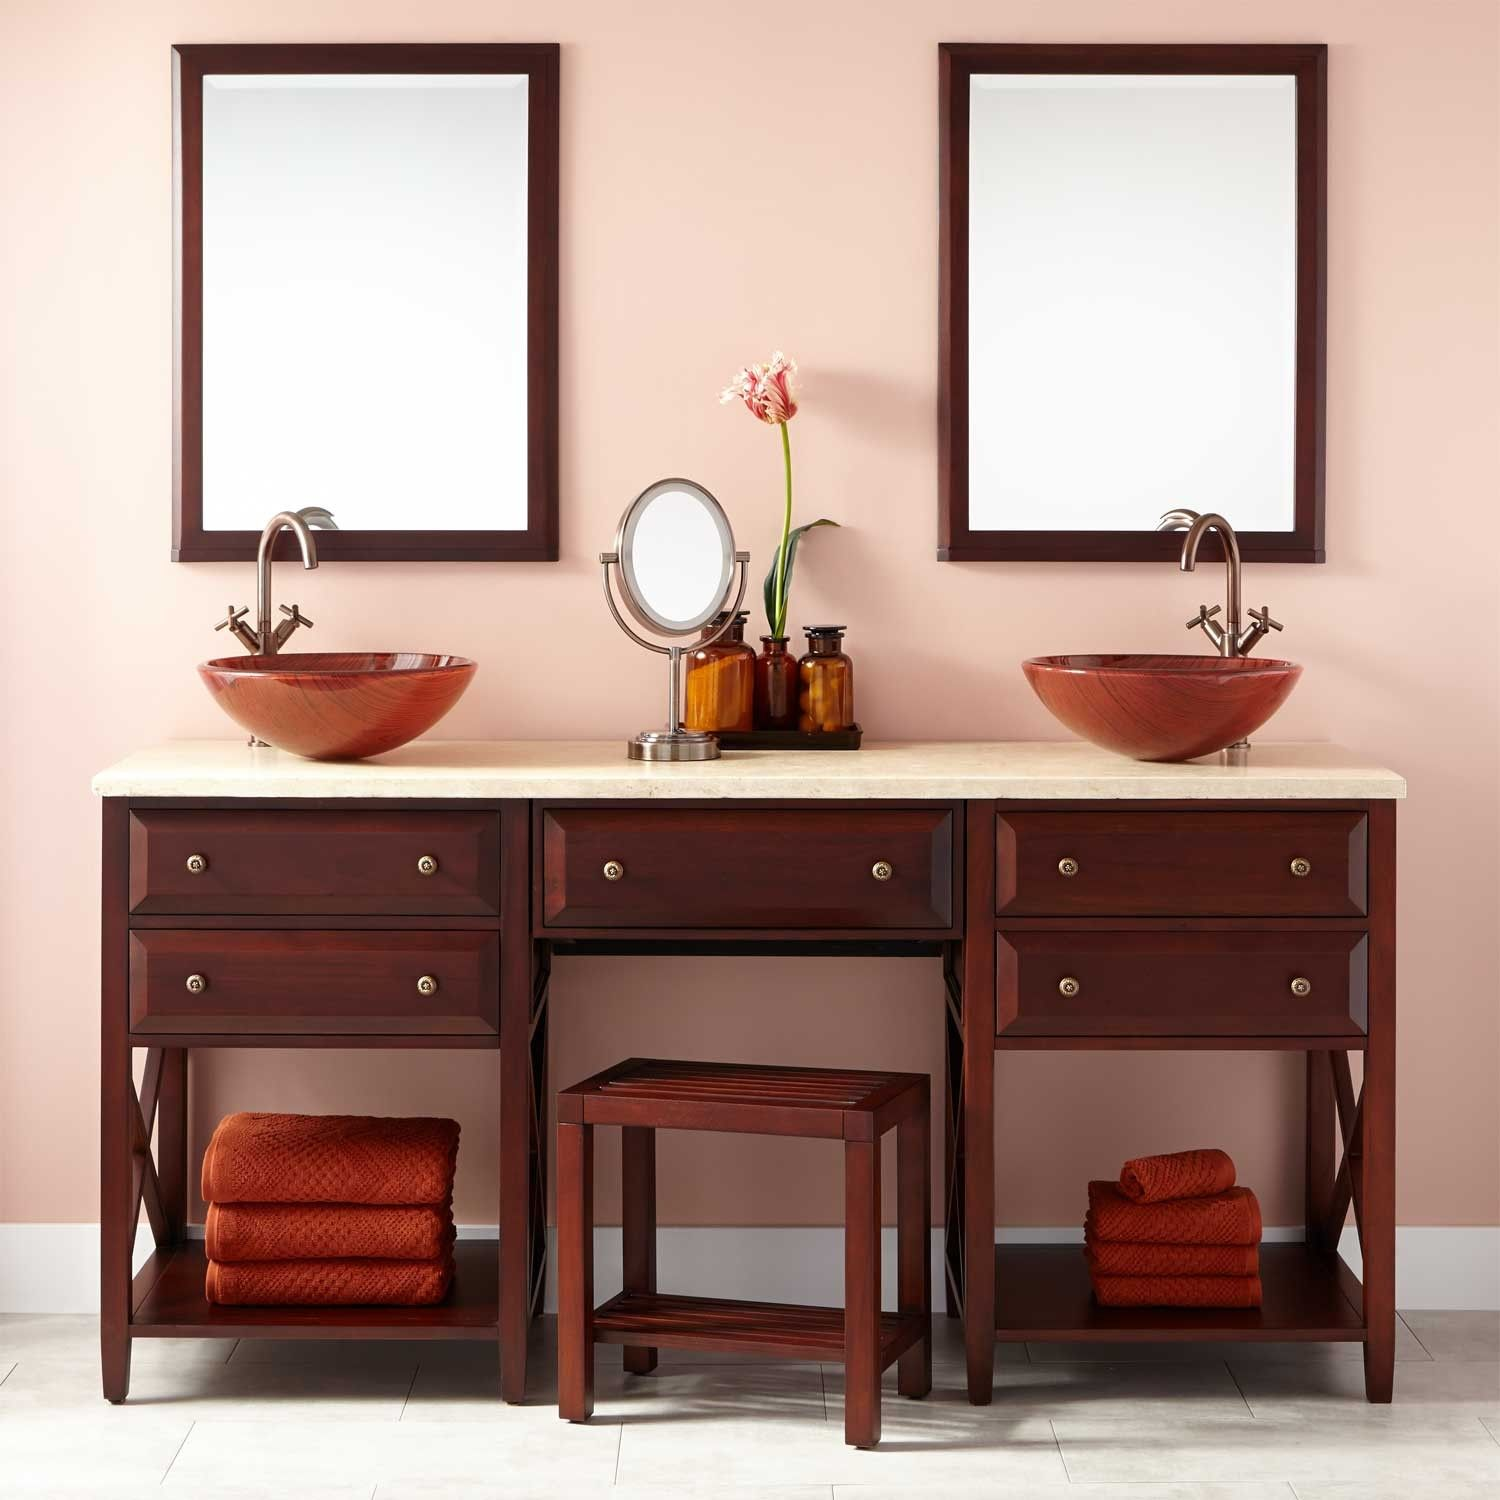 bathroom vanities images sink vanity way small vessel for as alternative with sinks your an